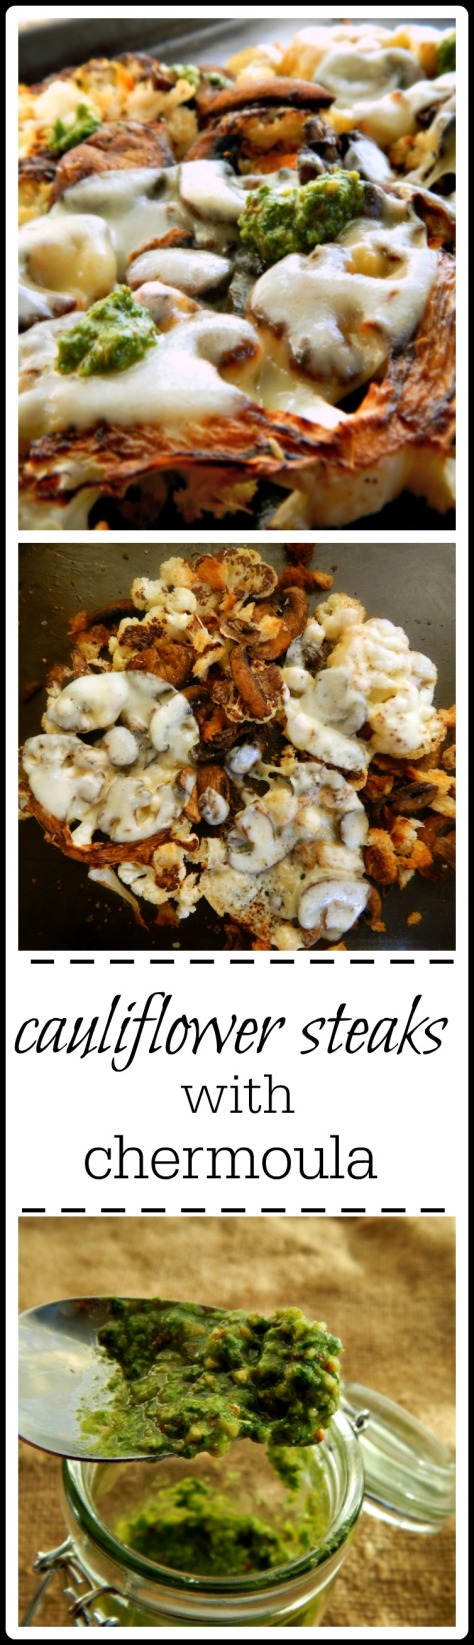 Roasted Cauliflower Steaks with Chermoula Sauce